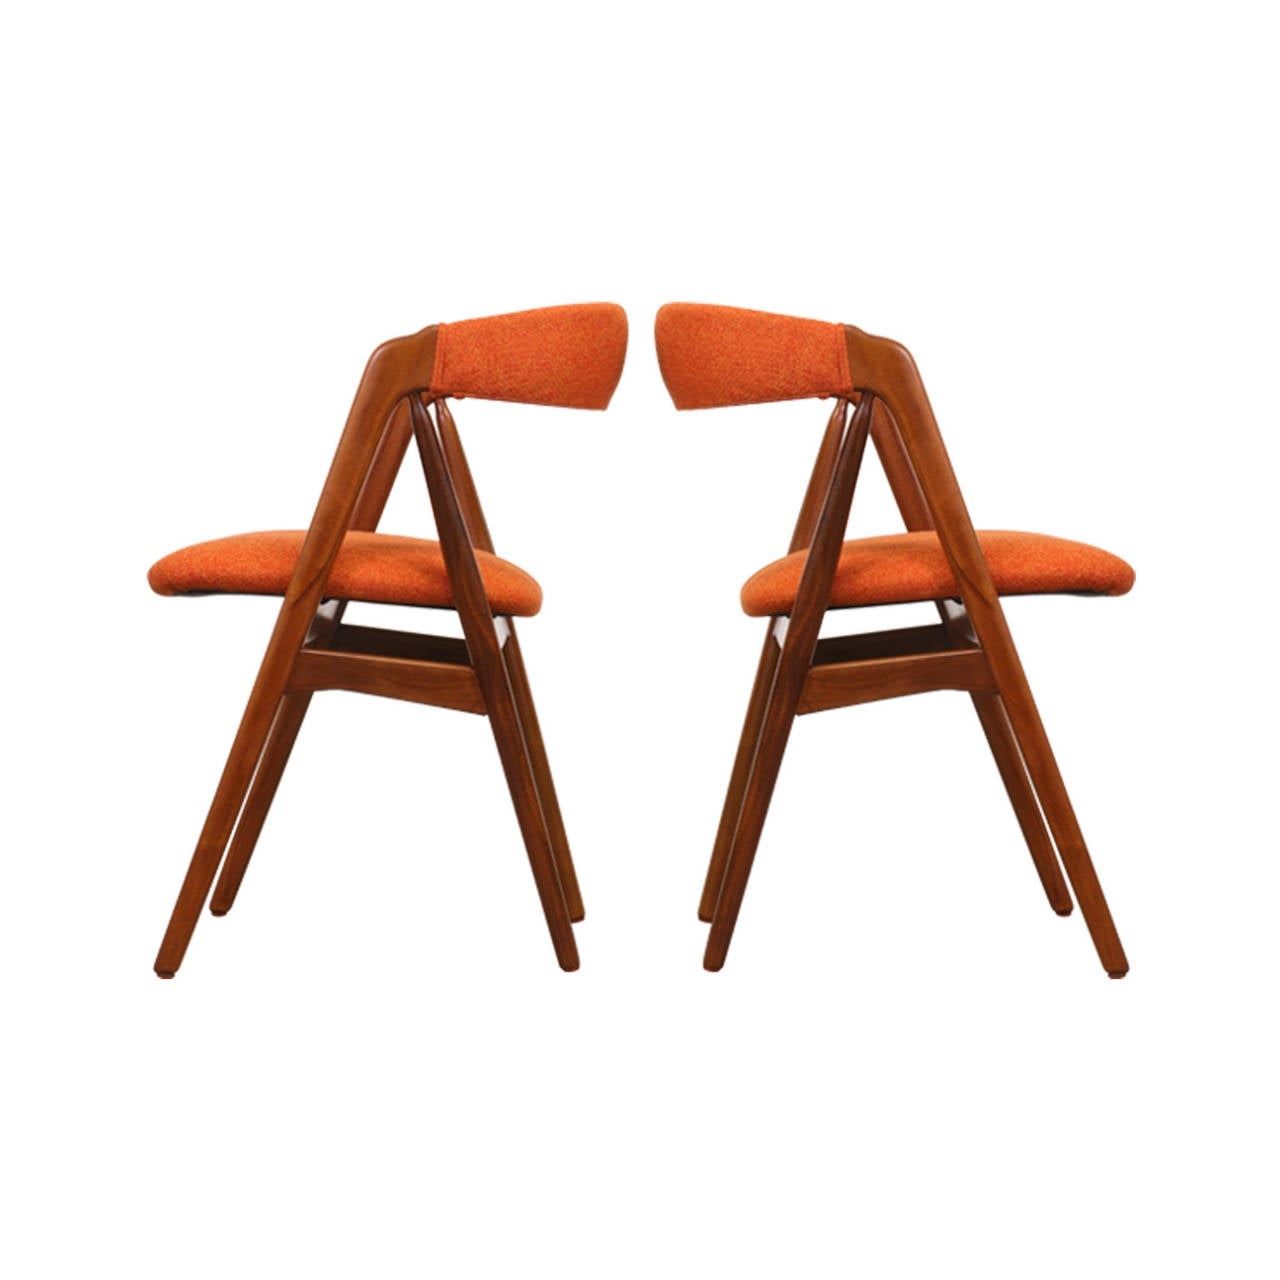 Kai Kristiansen A Frame Dining Chairs For Sale At 1stdibs